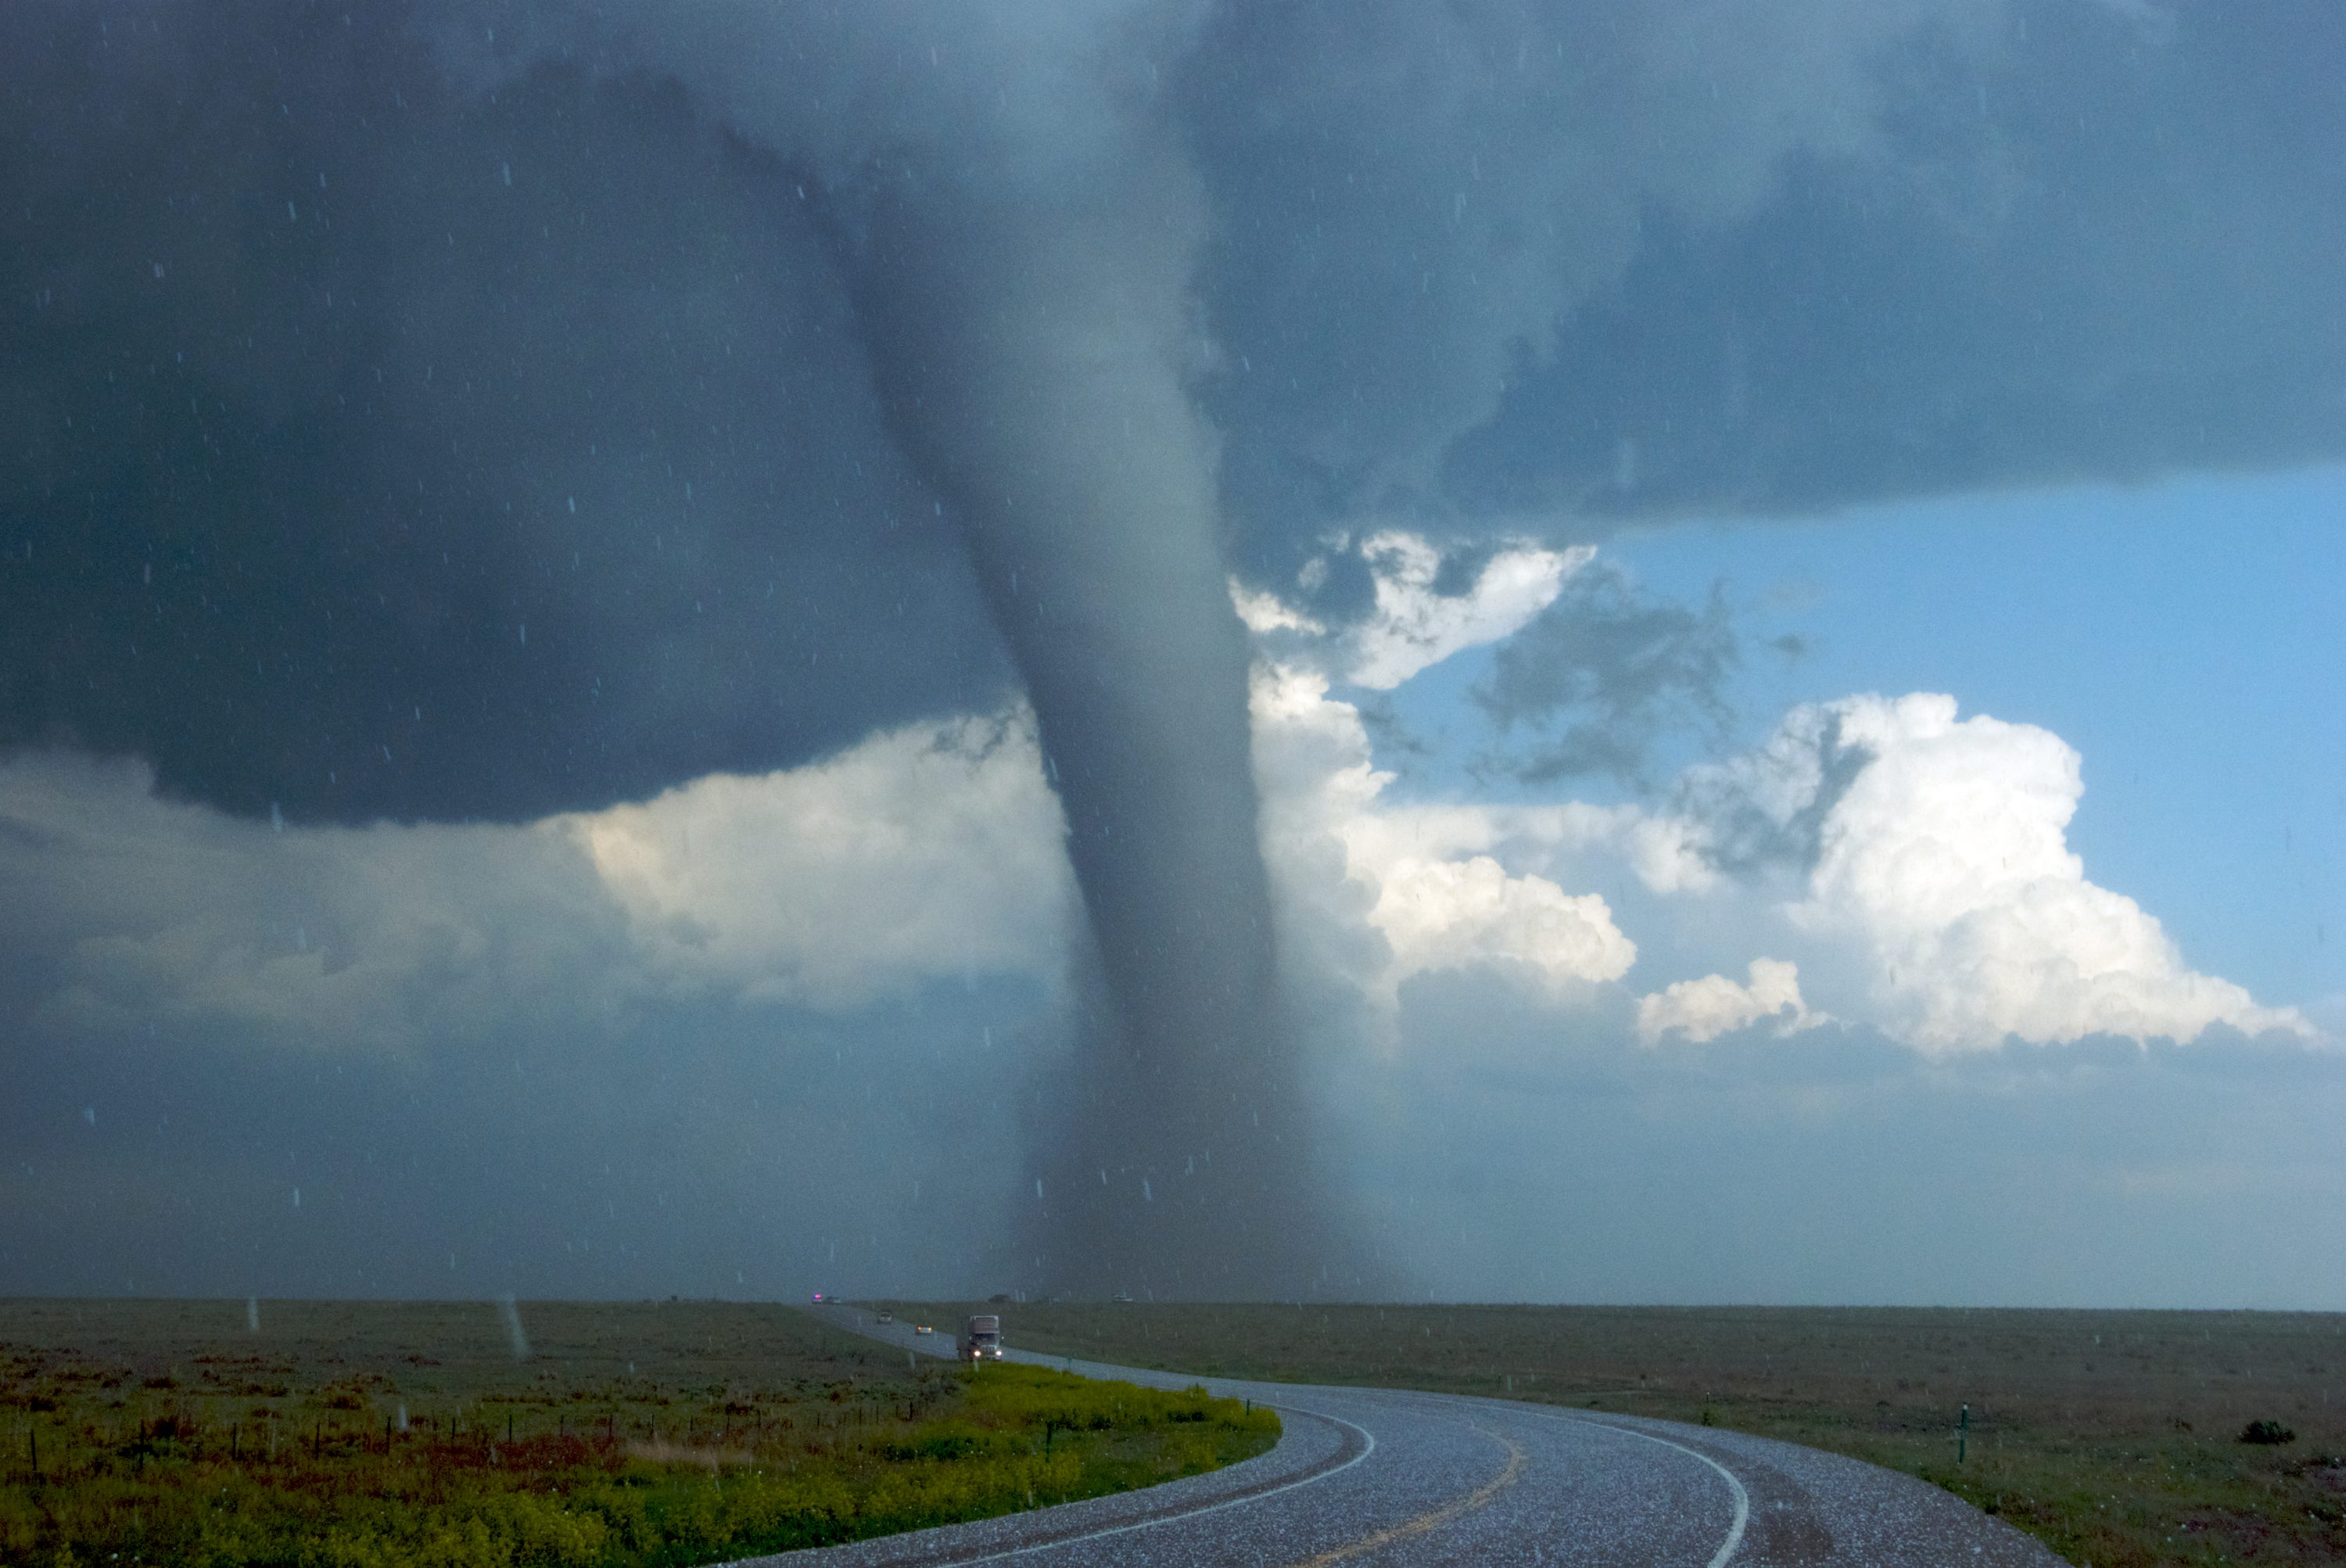 A tornado builds up within minutes and, in relation to its brief duration, is more destructive than a hurricane. Topics Online explains how a tornado forms. On Monday, 20 May, a one-and-a half kilometre wide tornado tore through the suburbs of Oklahoma City gouging a 30 km long by 2 km wide corridor of destruction out of the landscape.